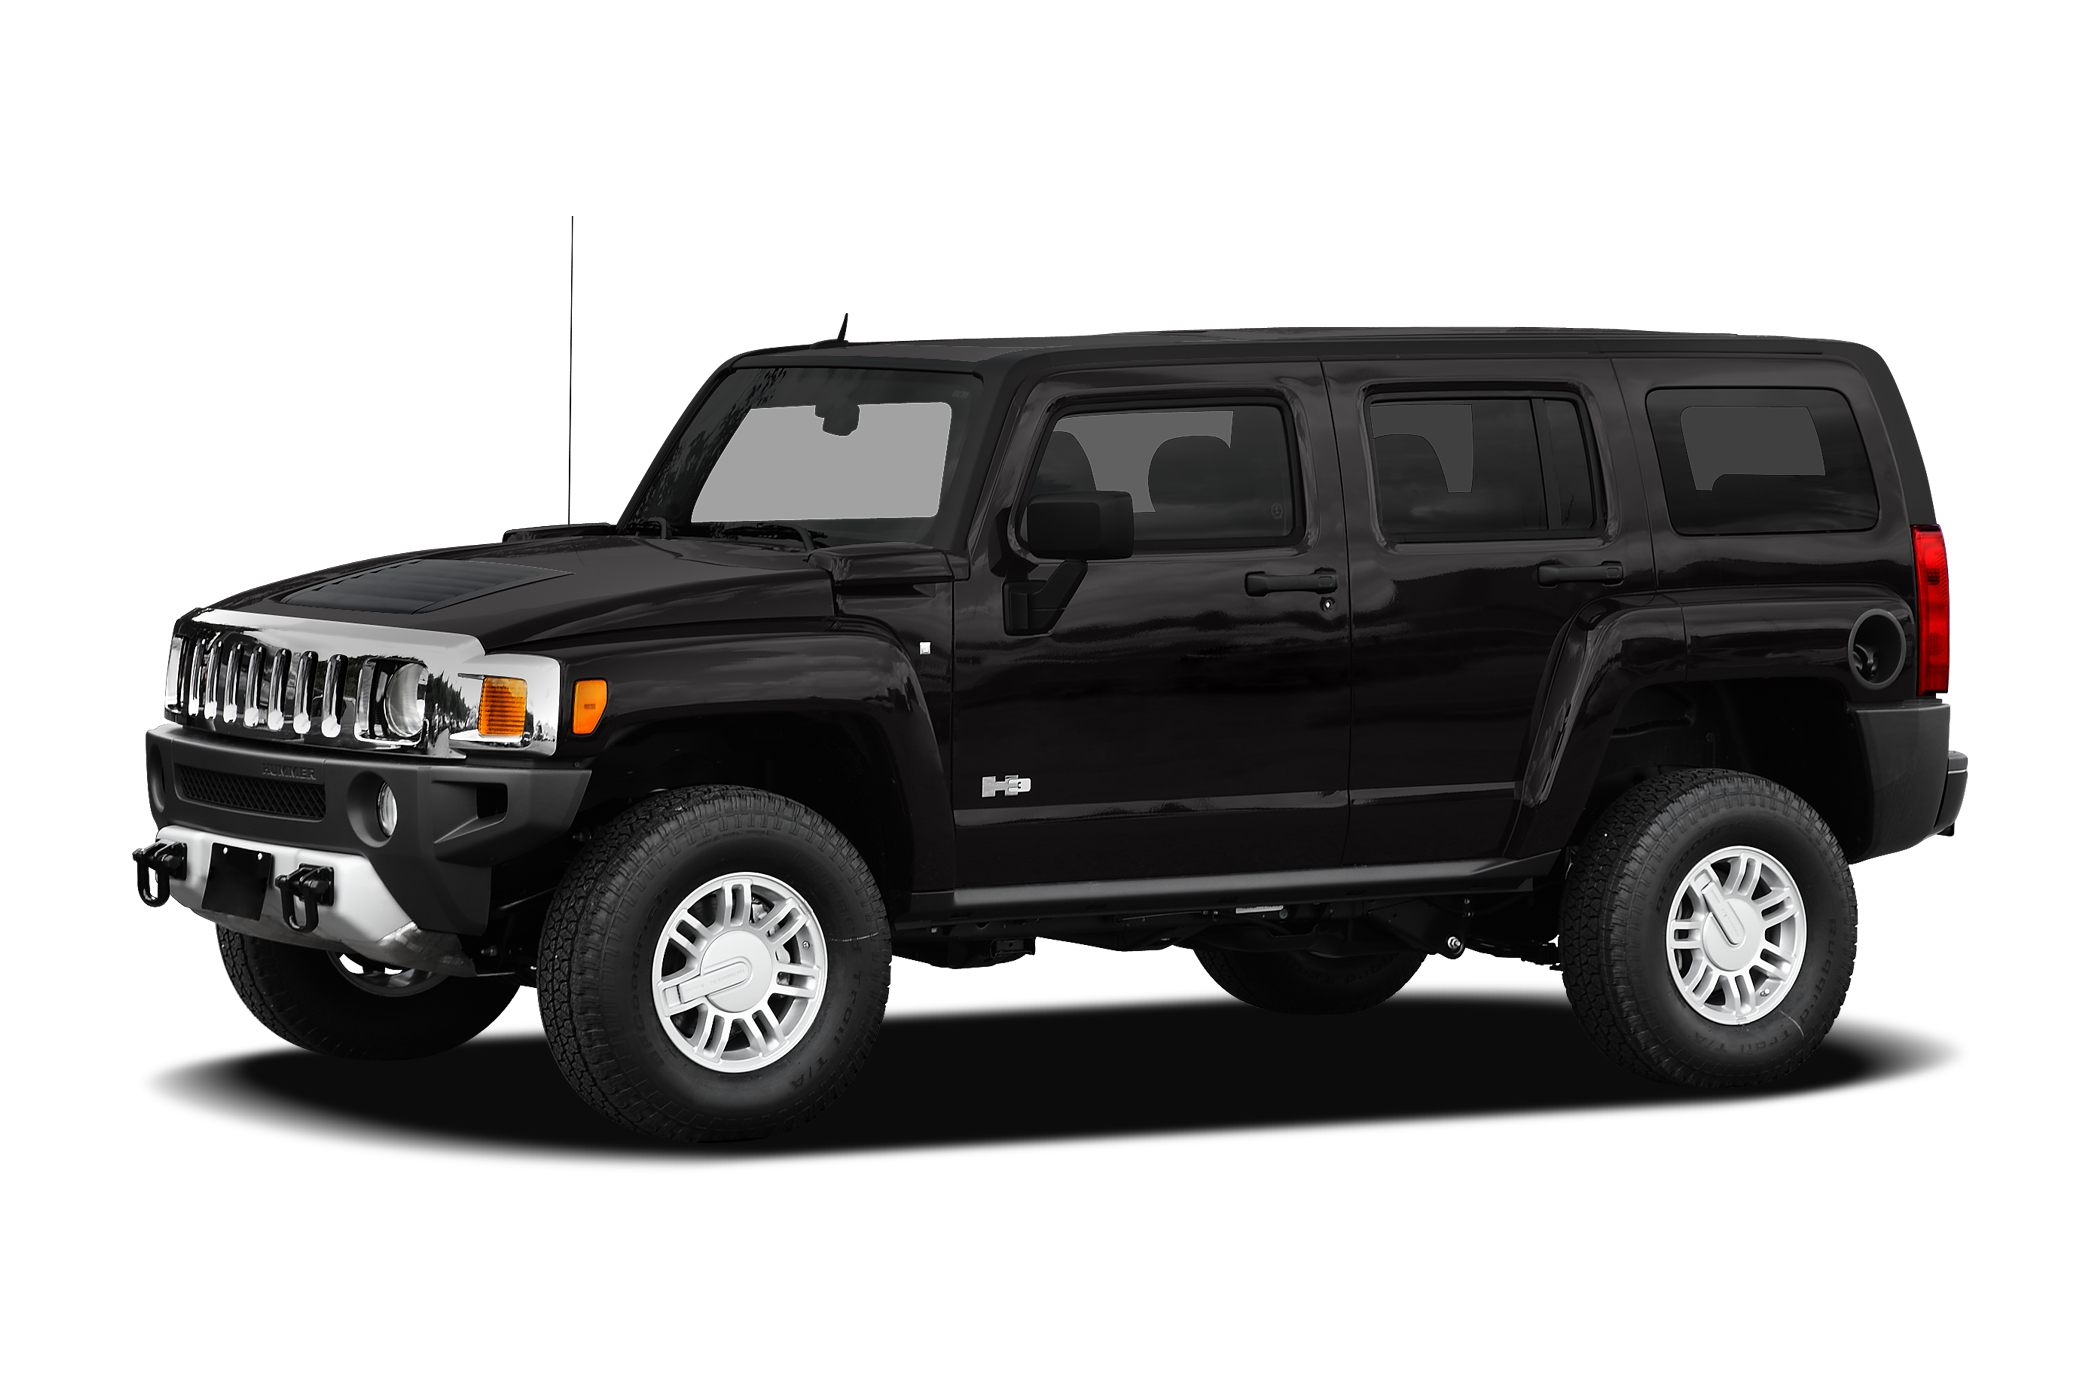 2008 HUMMER H3 SUV Specs and Prices